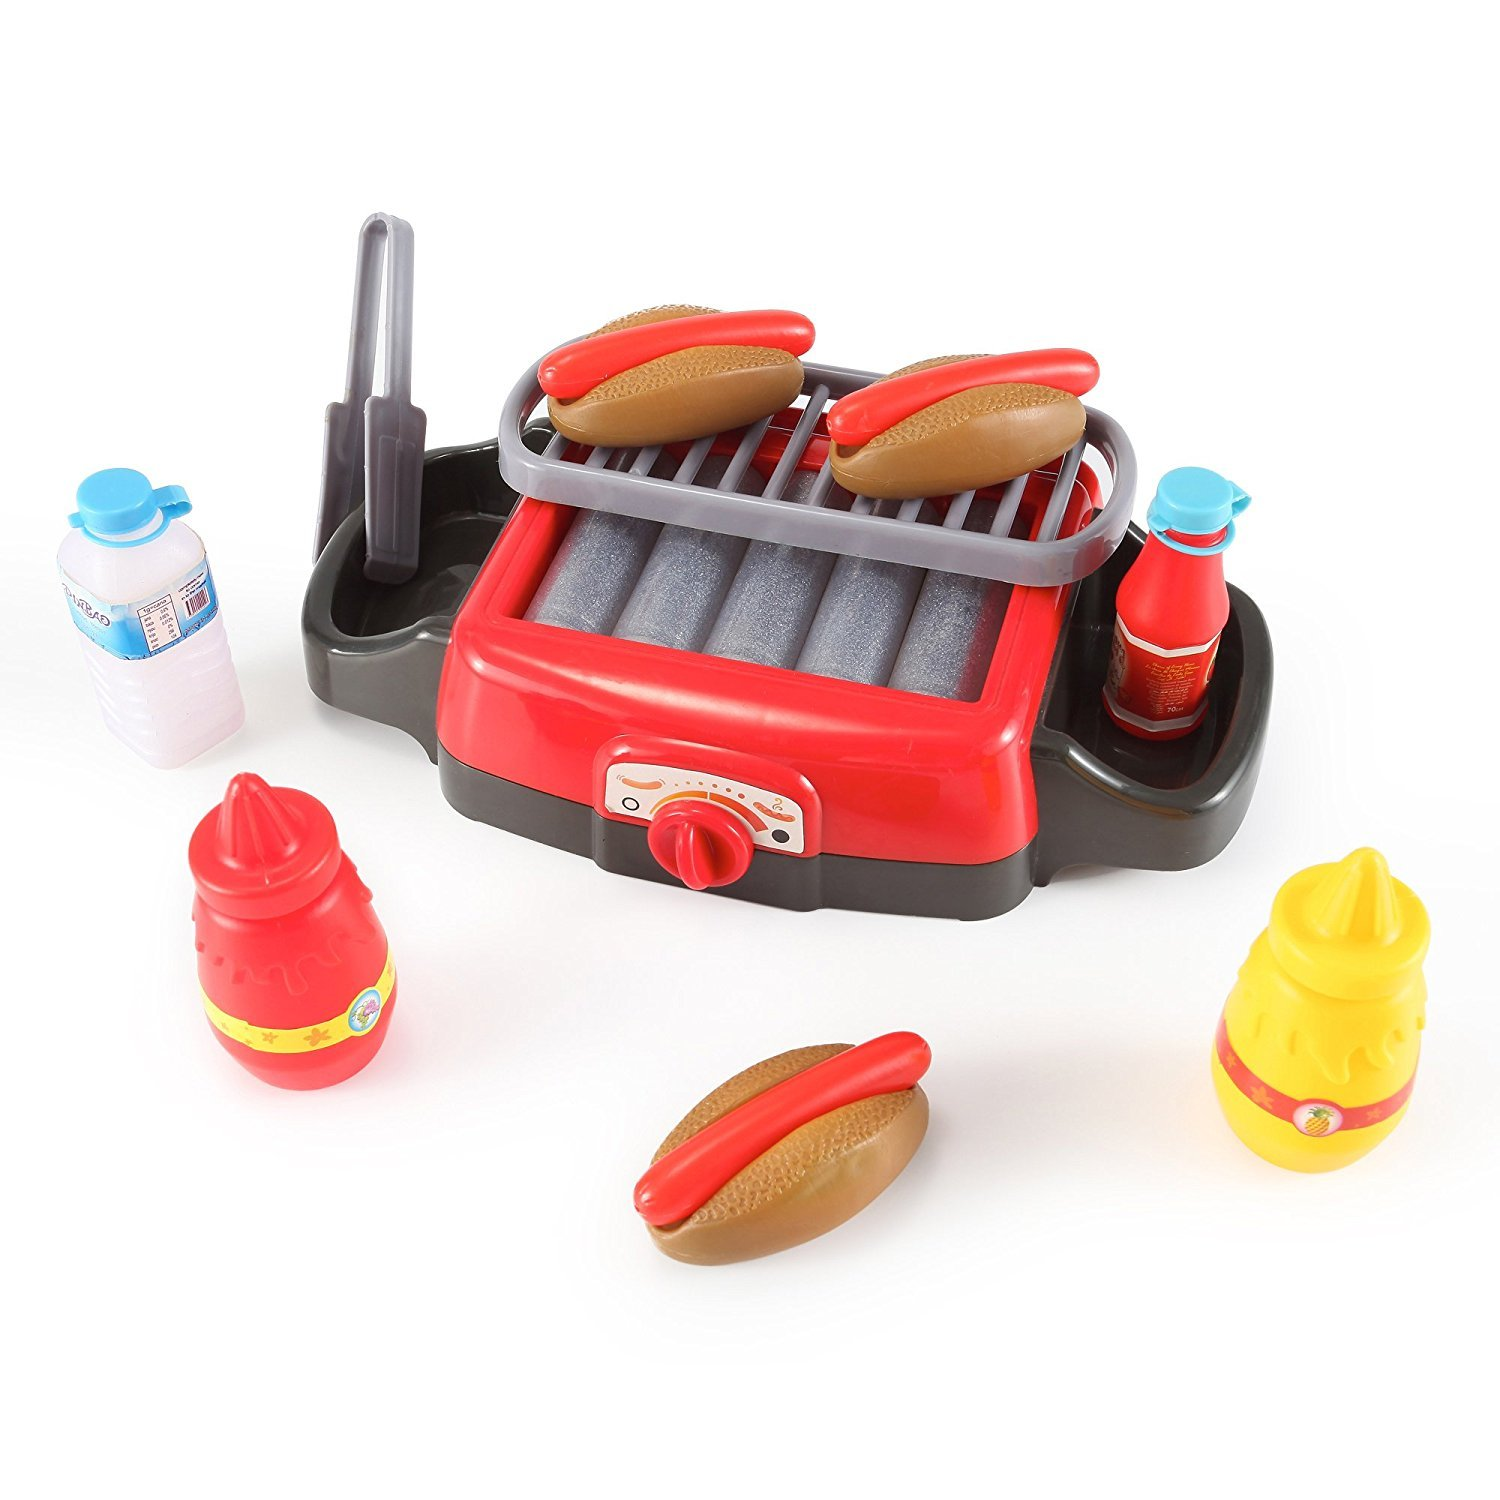 PowerTRC Hot Dog Roller Grill Electric Stove Play Food Kitchen Appliance Set for Kids